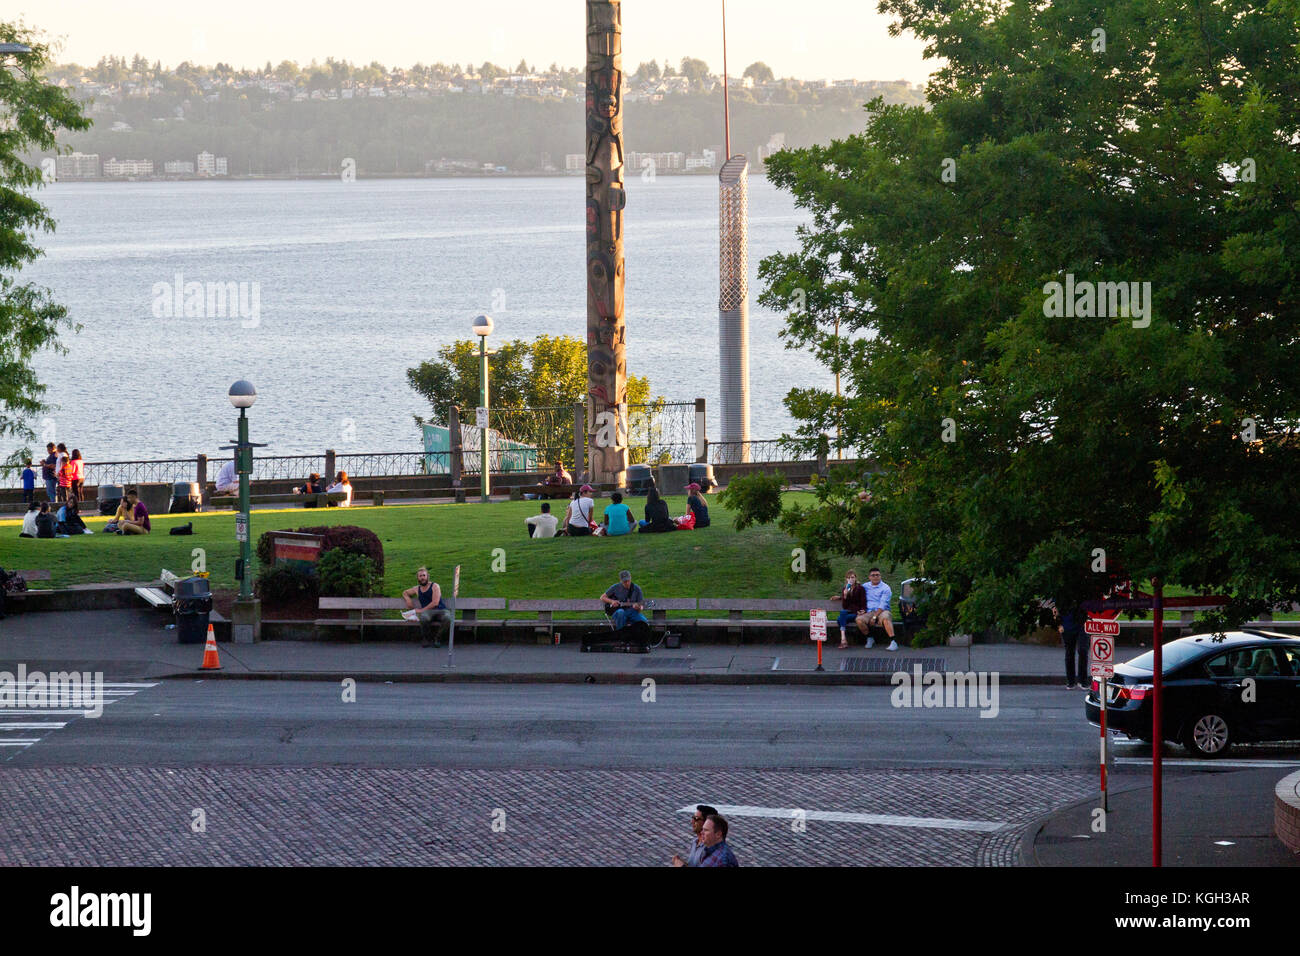 People relaxing in the Victor Steinbrueck Park in Seattle, Washington with a view of Eliot Bay. - Stock Image